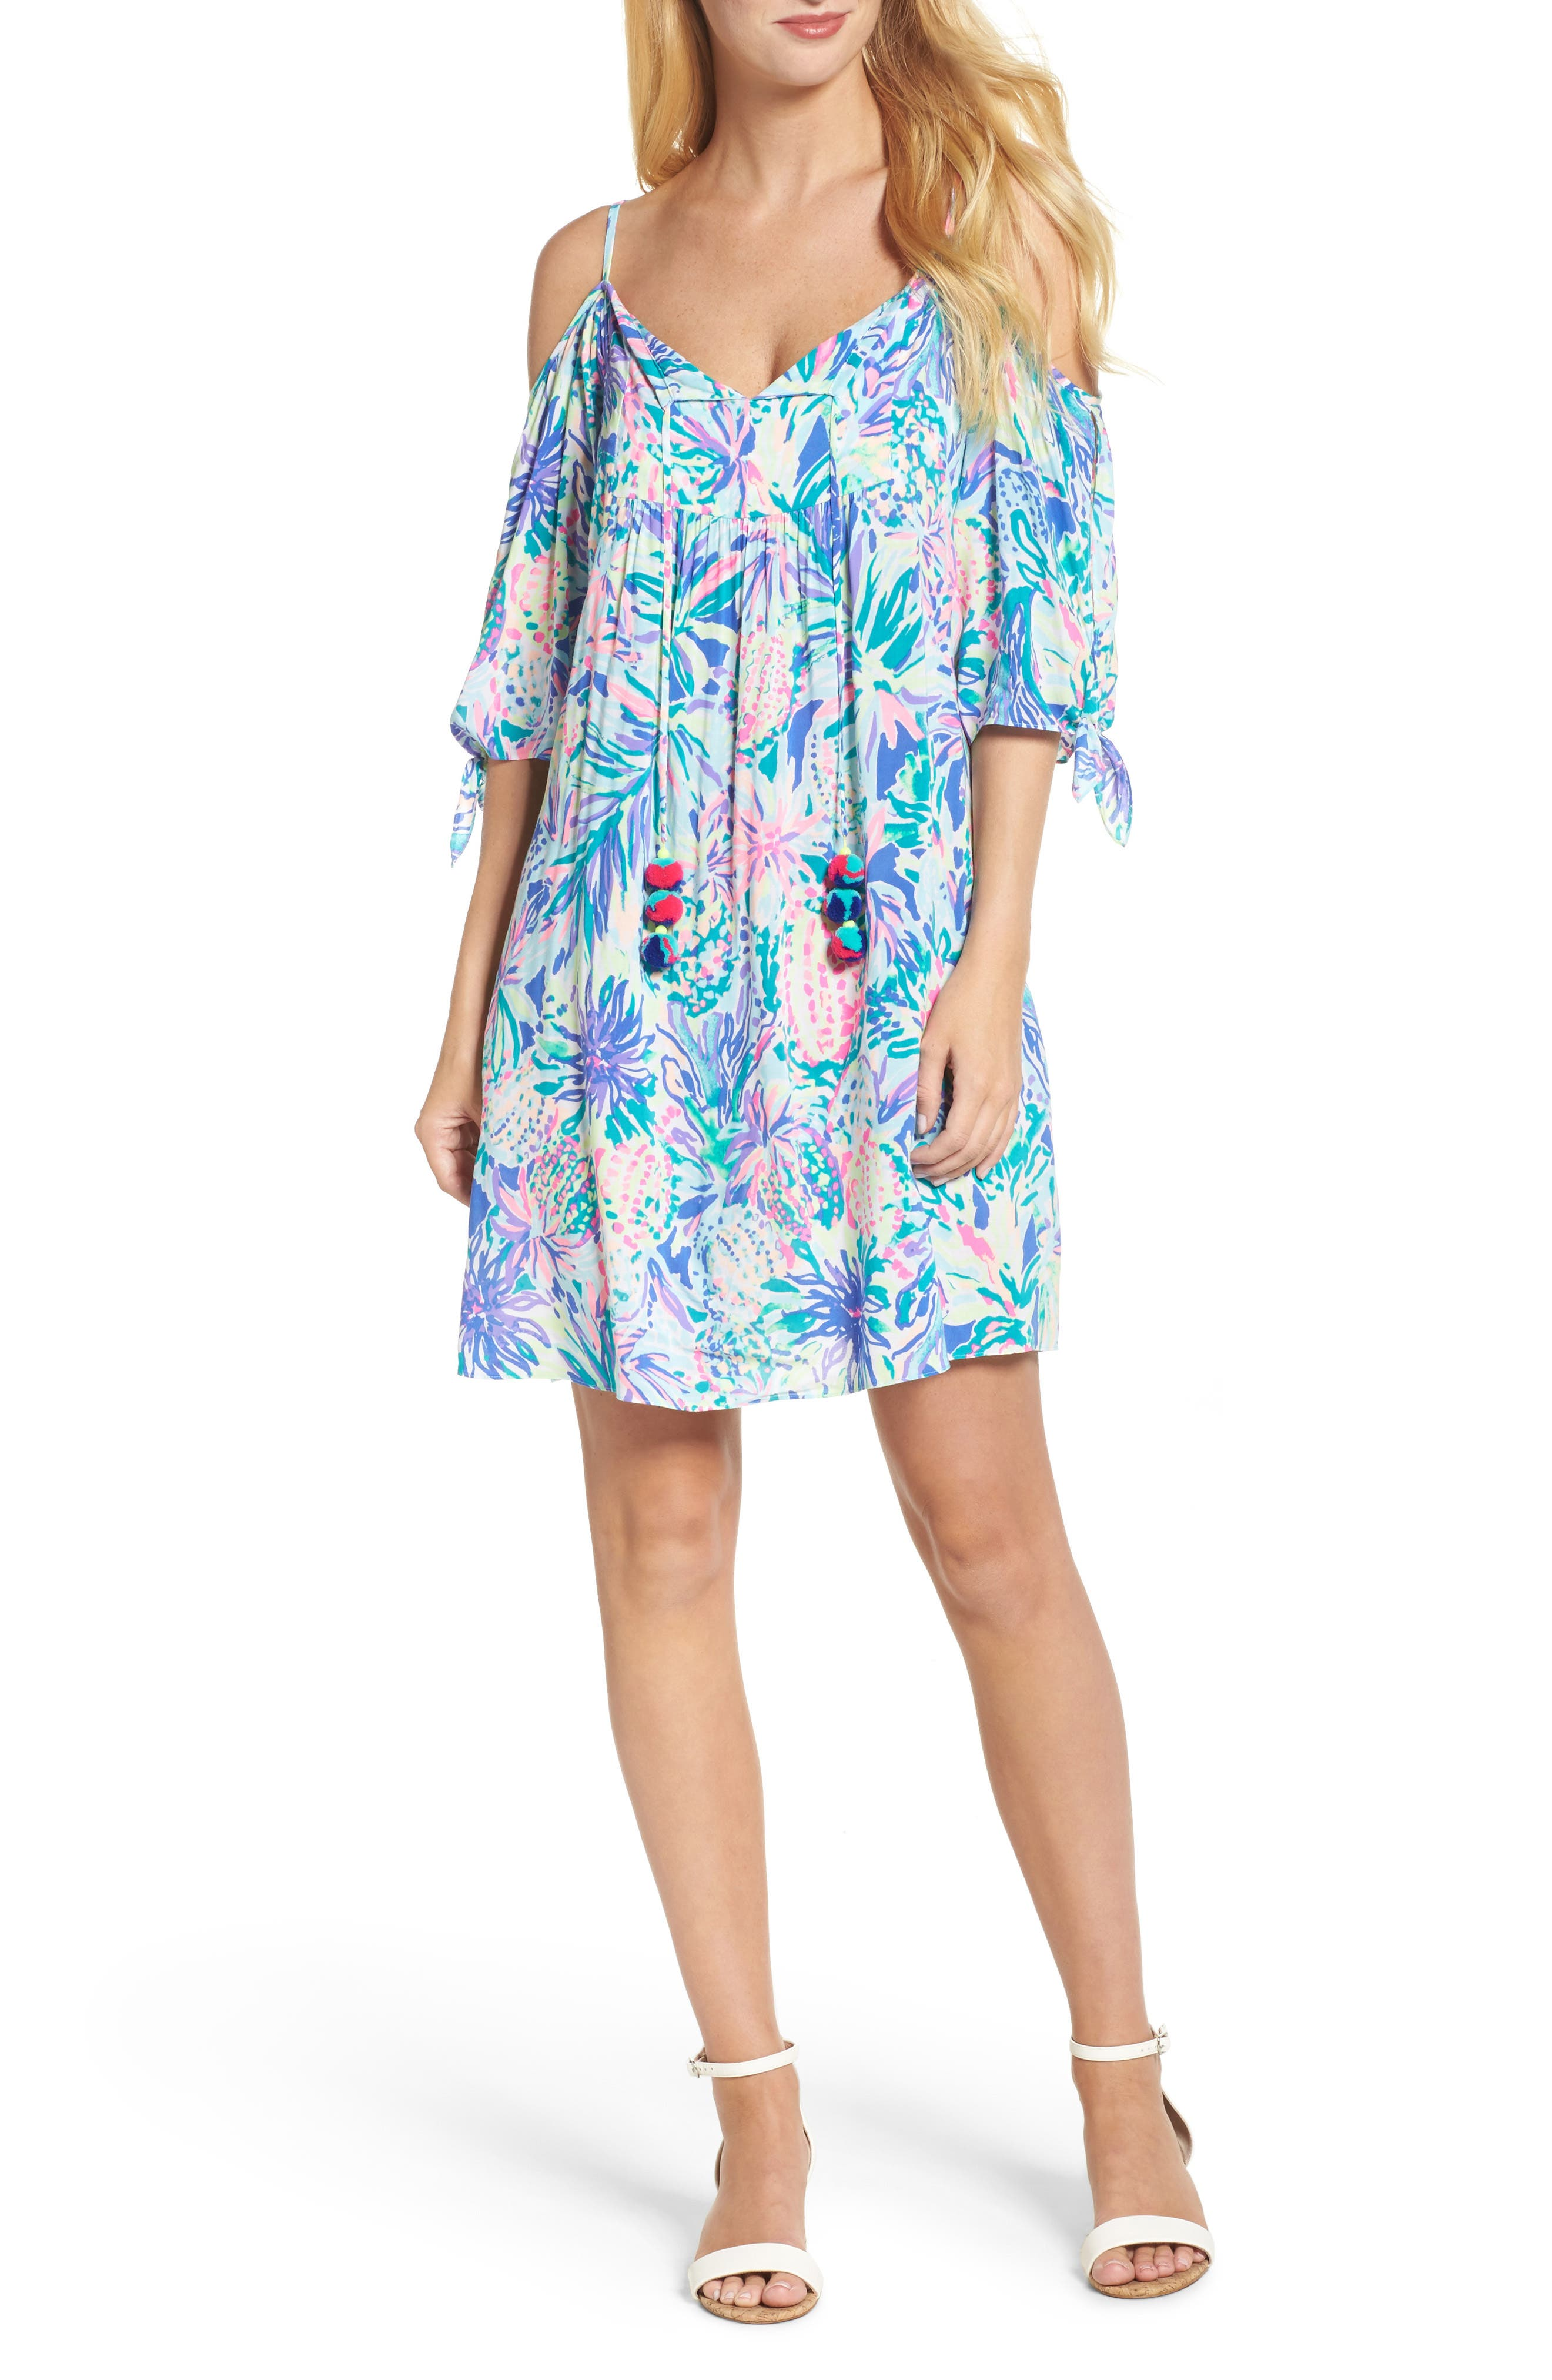 Alternate Image 1 Selected - Lilly Pulitzer® Alanna Cold Shoulder Dress